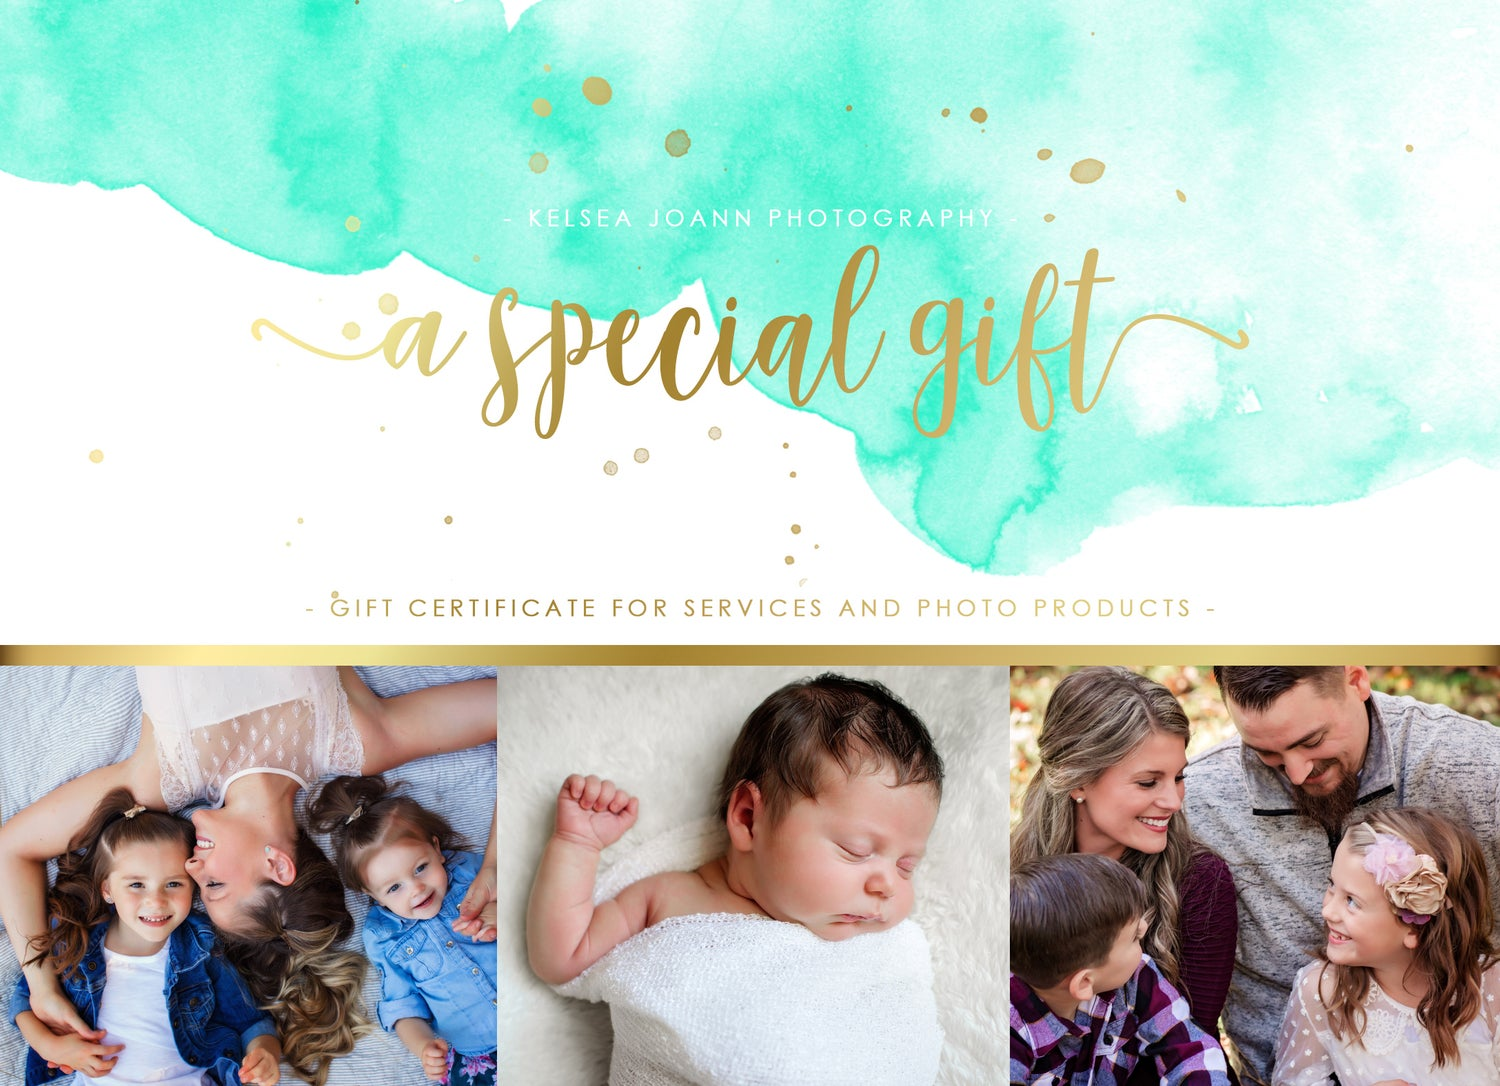 Image of Kelsea Joann Photography Gift Certificate